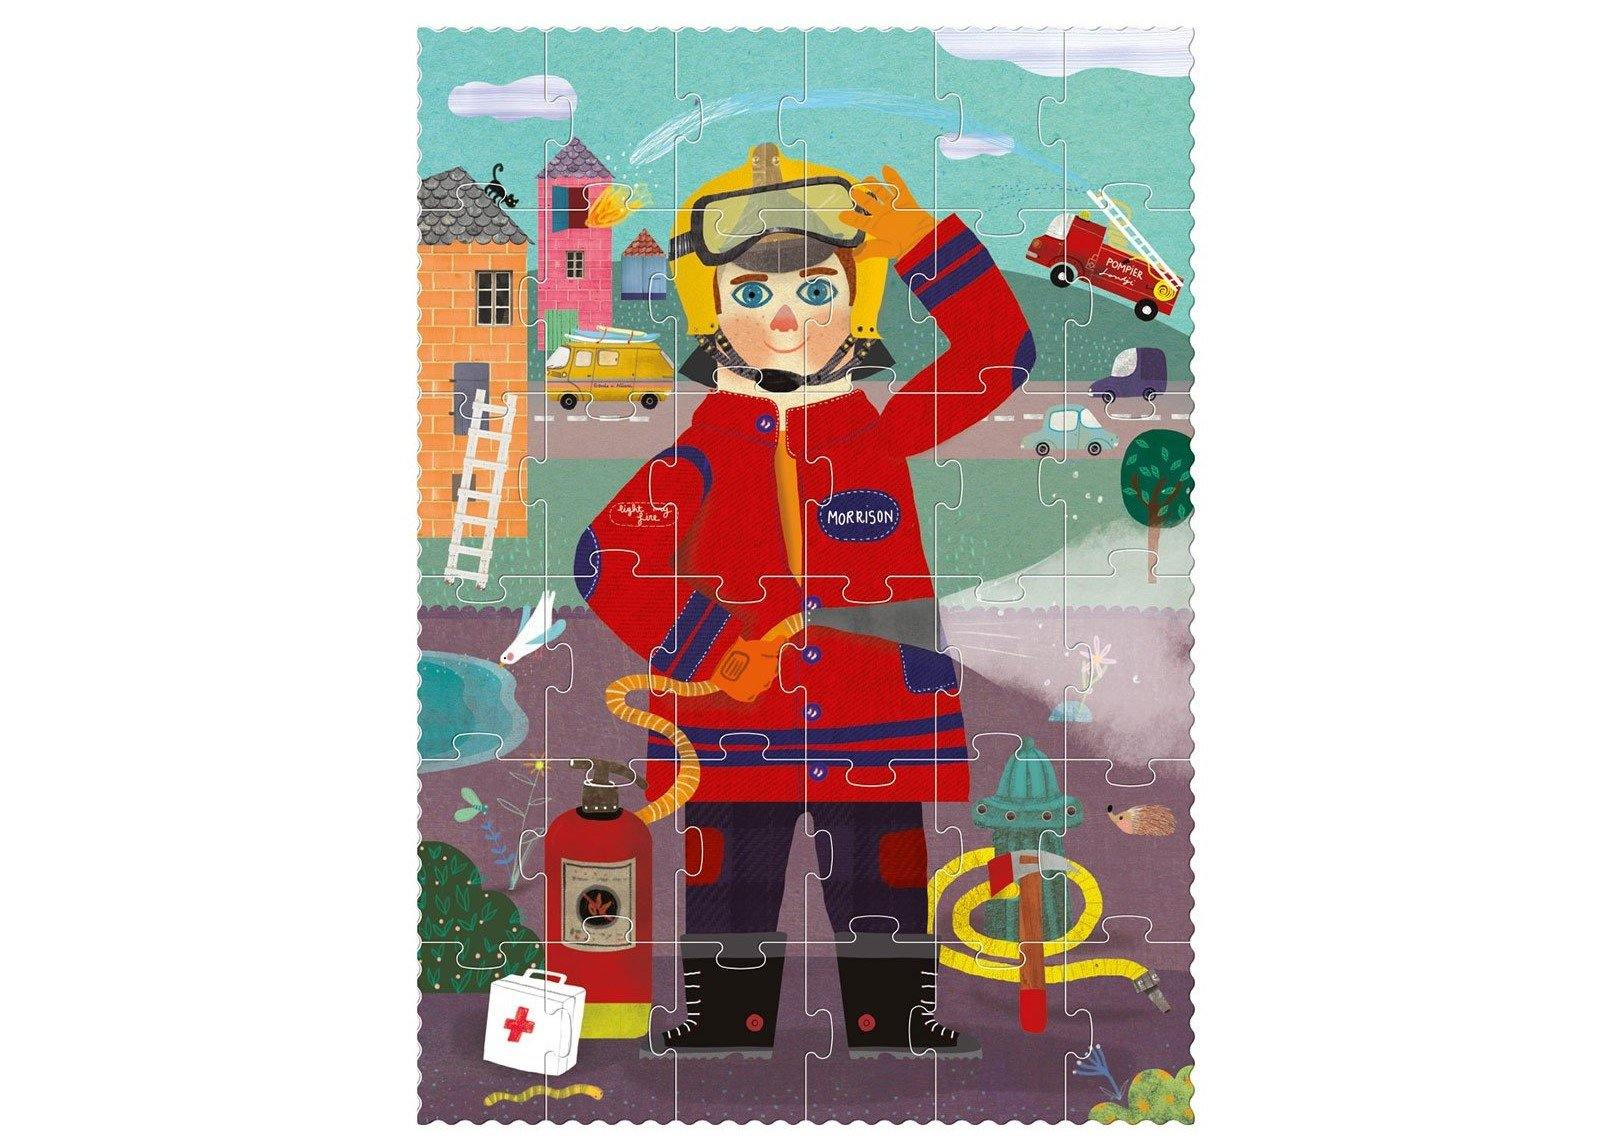 Londji Fireman Puzzle made by Londji